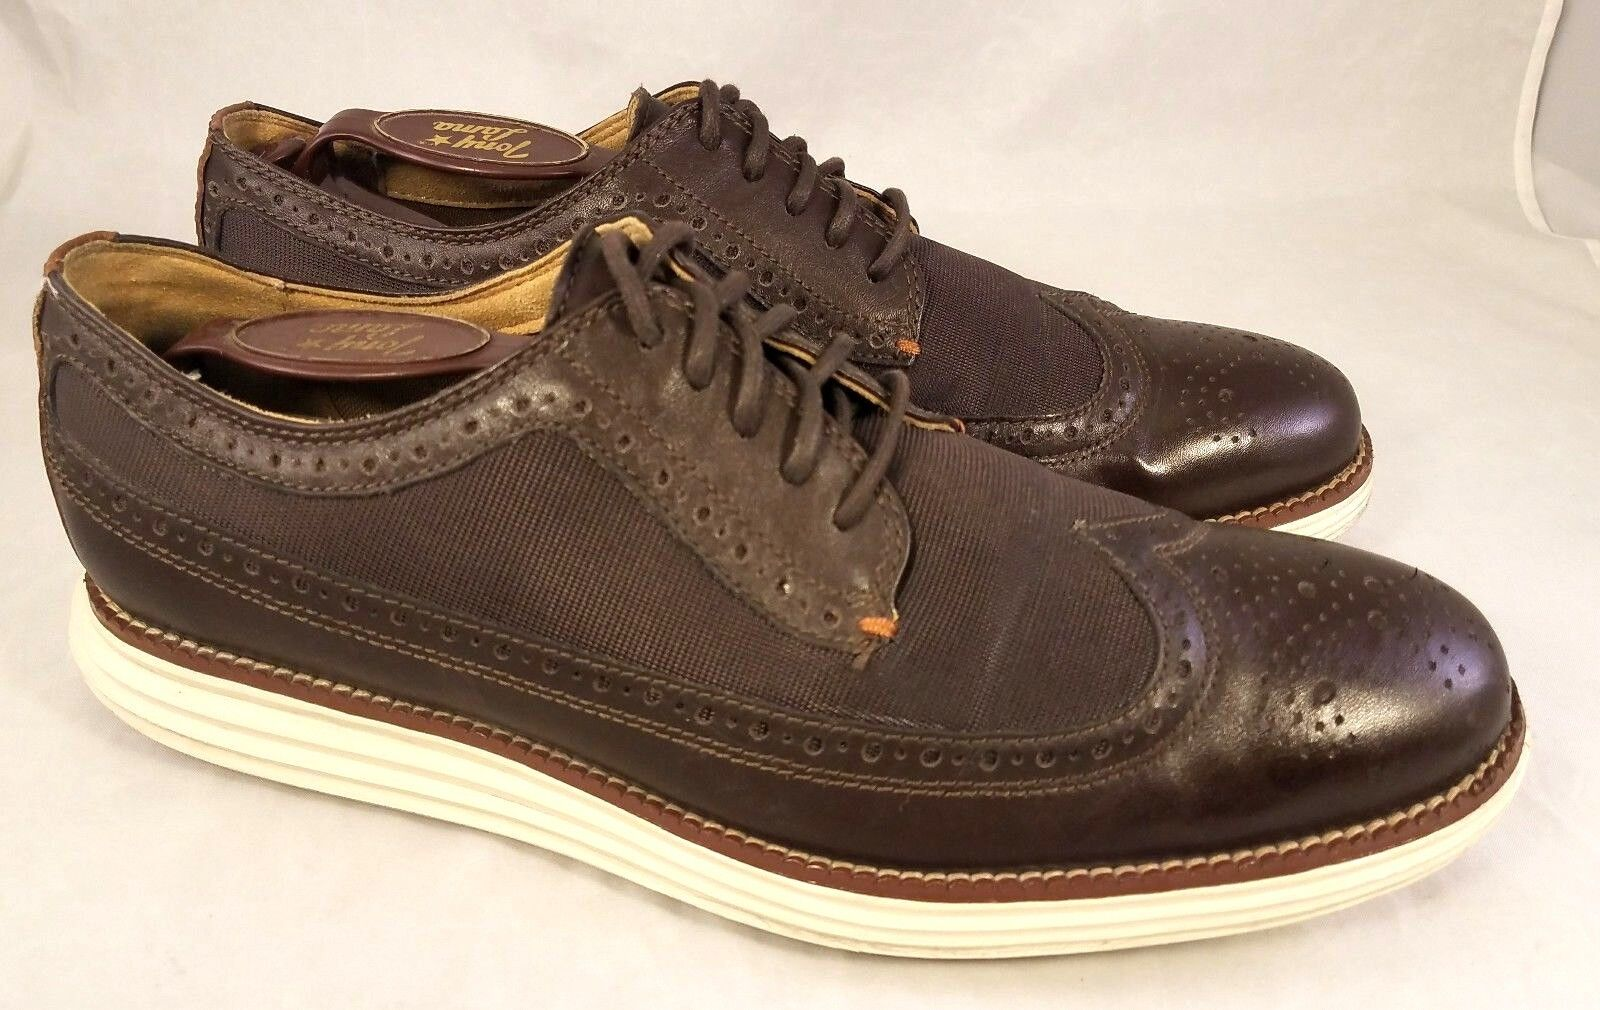 SIZE US 8 1 2 MAN COLE HAAN GRAND OS grand OS SHOES WINGTIP OXFORDS BROWN